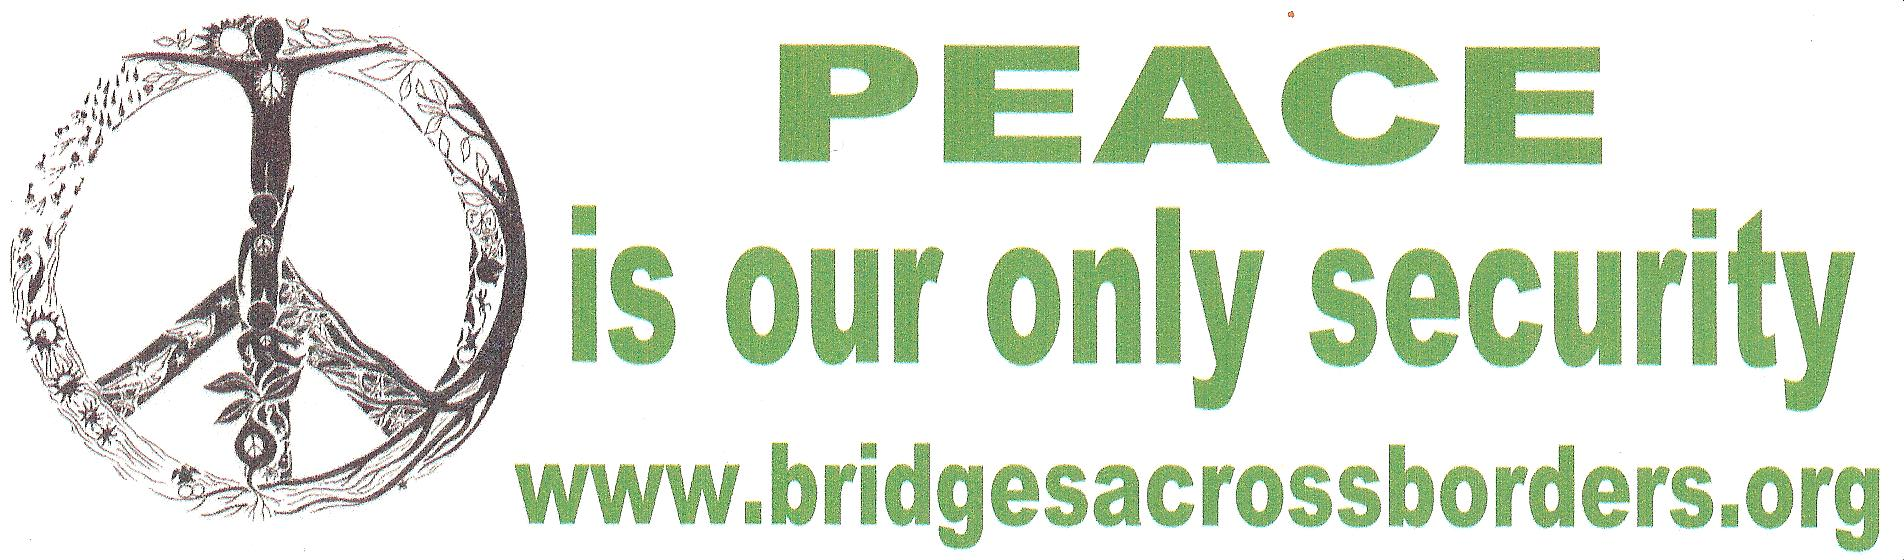 peace-is-security-bs